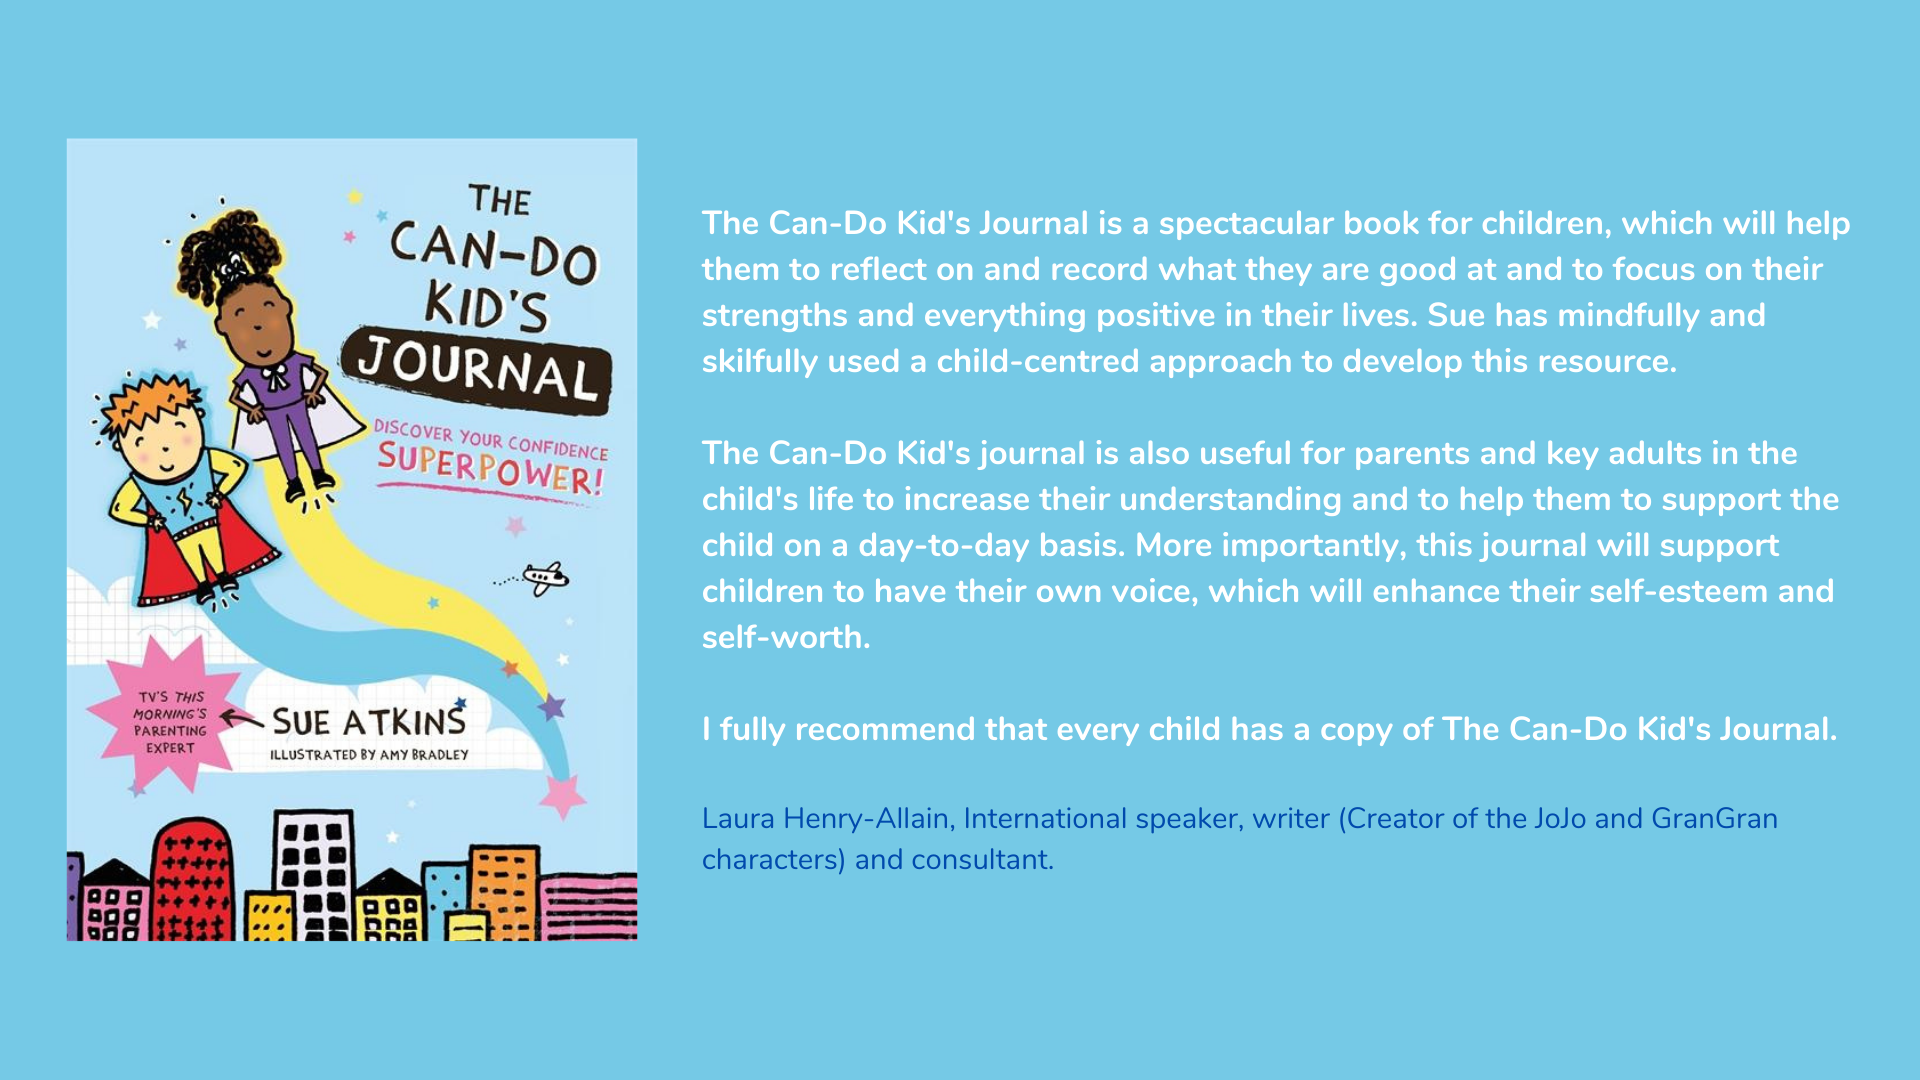 The Can-Do Kid's Journal: Discover Your Confidence Superpower!